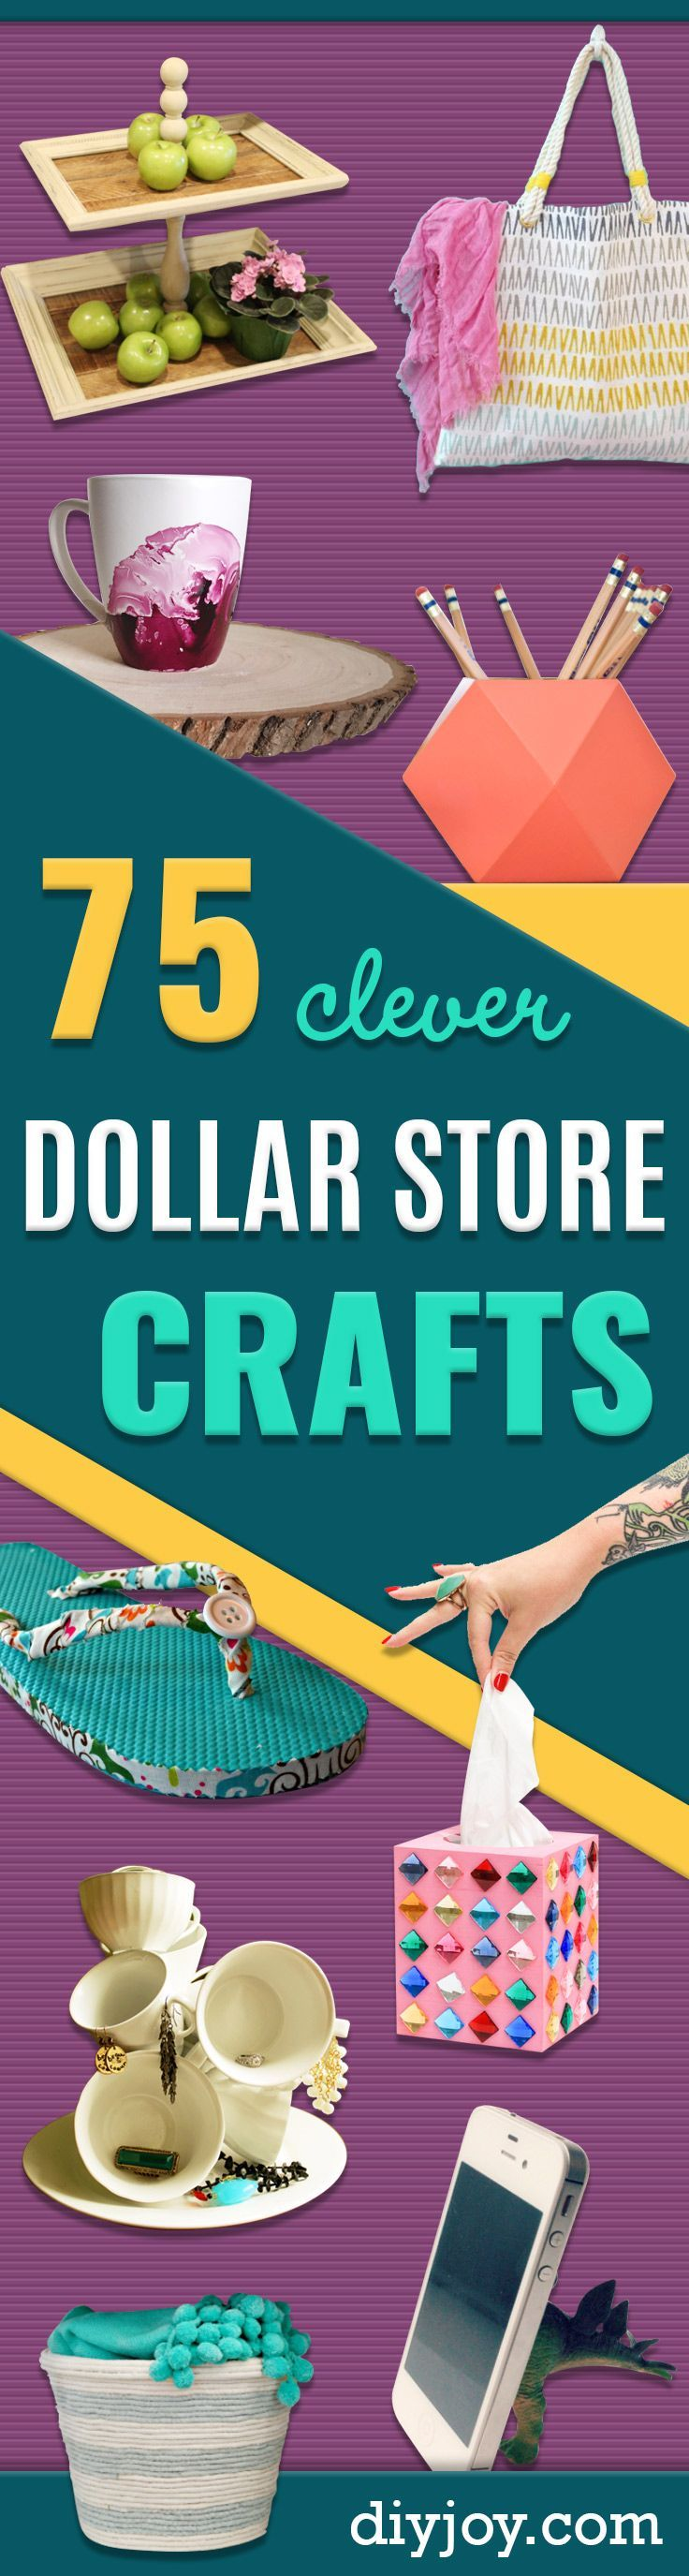 The 75 Absolute Best Dollar Store Crafts Ever in 2020 | Diy dollar